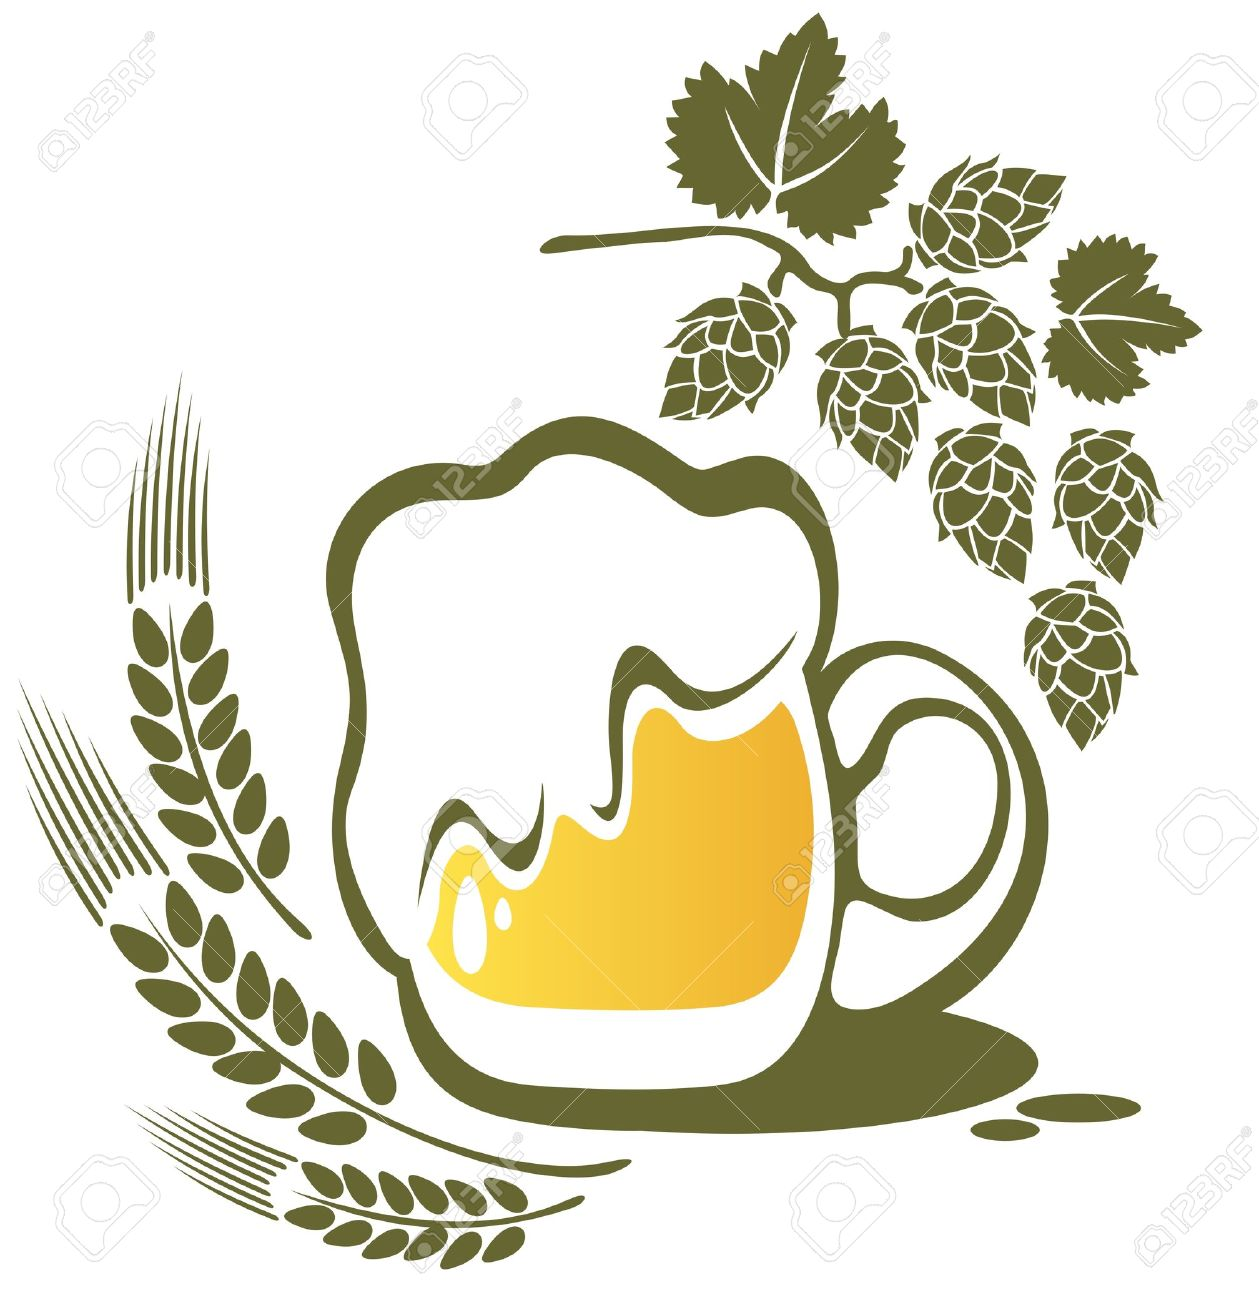 Beer Mug And Wheat Ear Isolated On A White Background. Royalty.